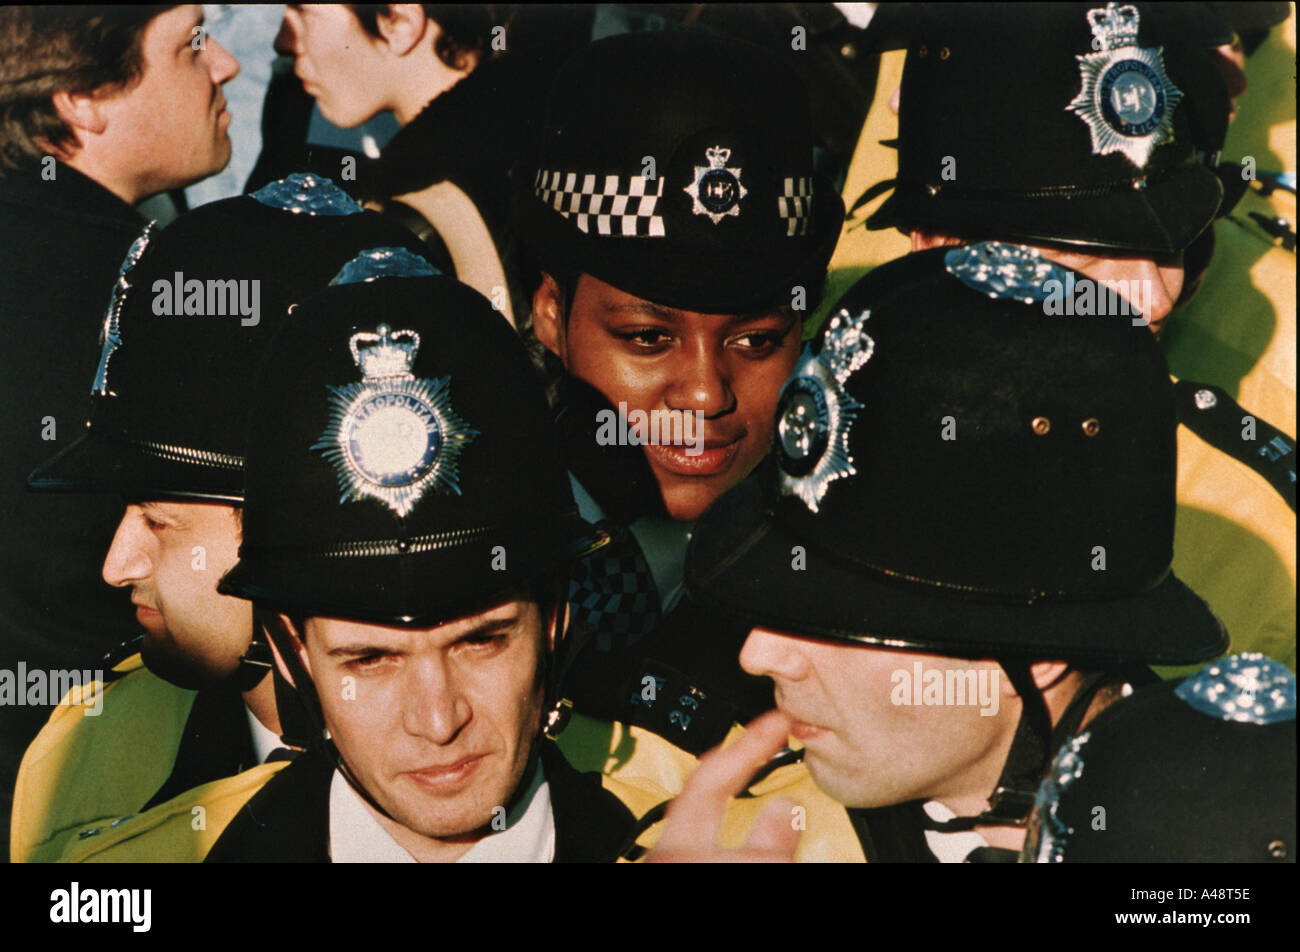 police officers at anti racist march south london 16 10 93 - Stock Image